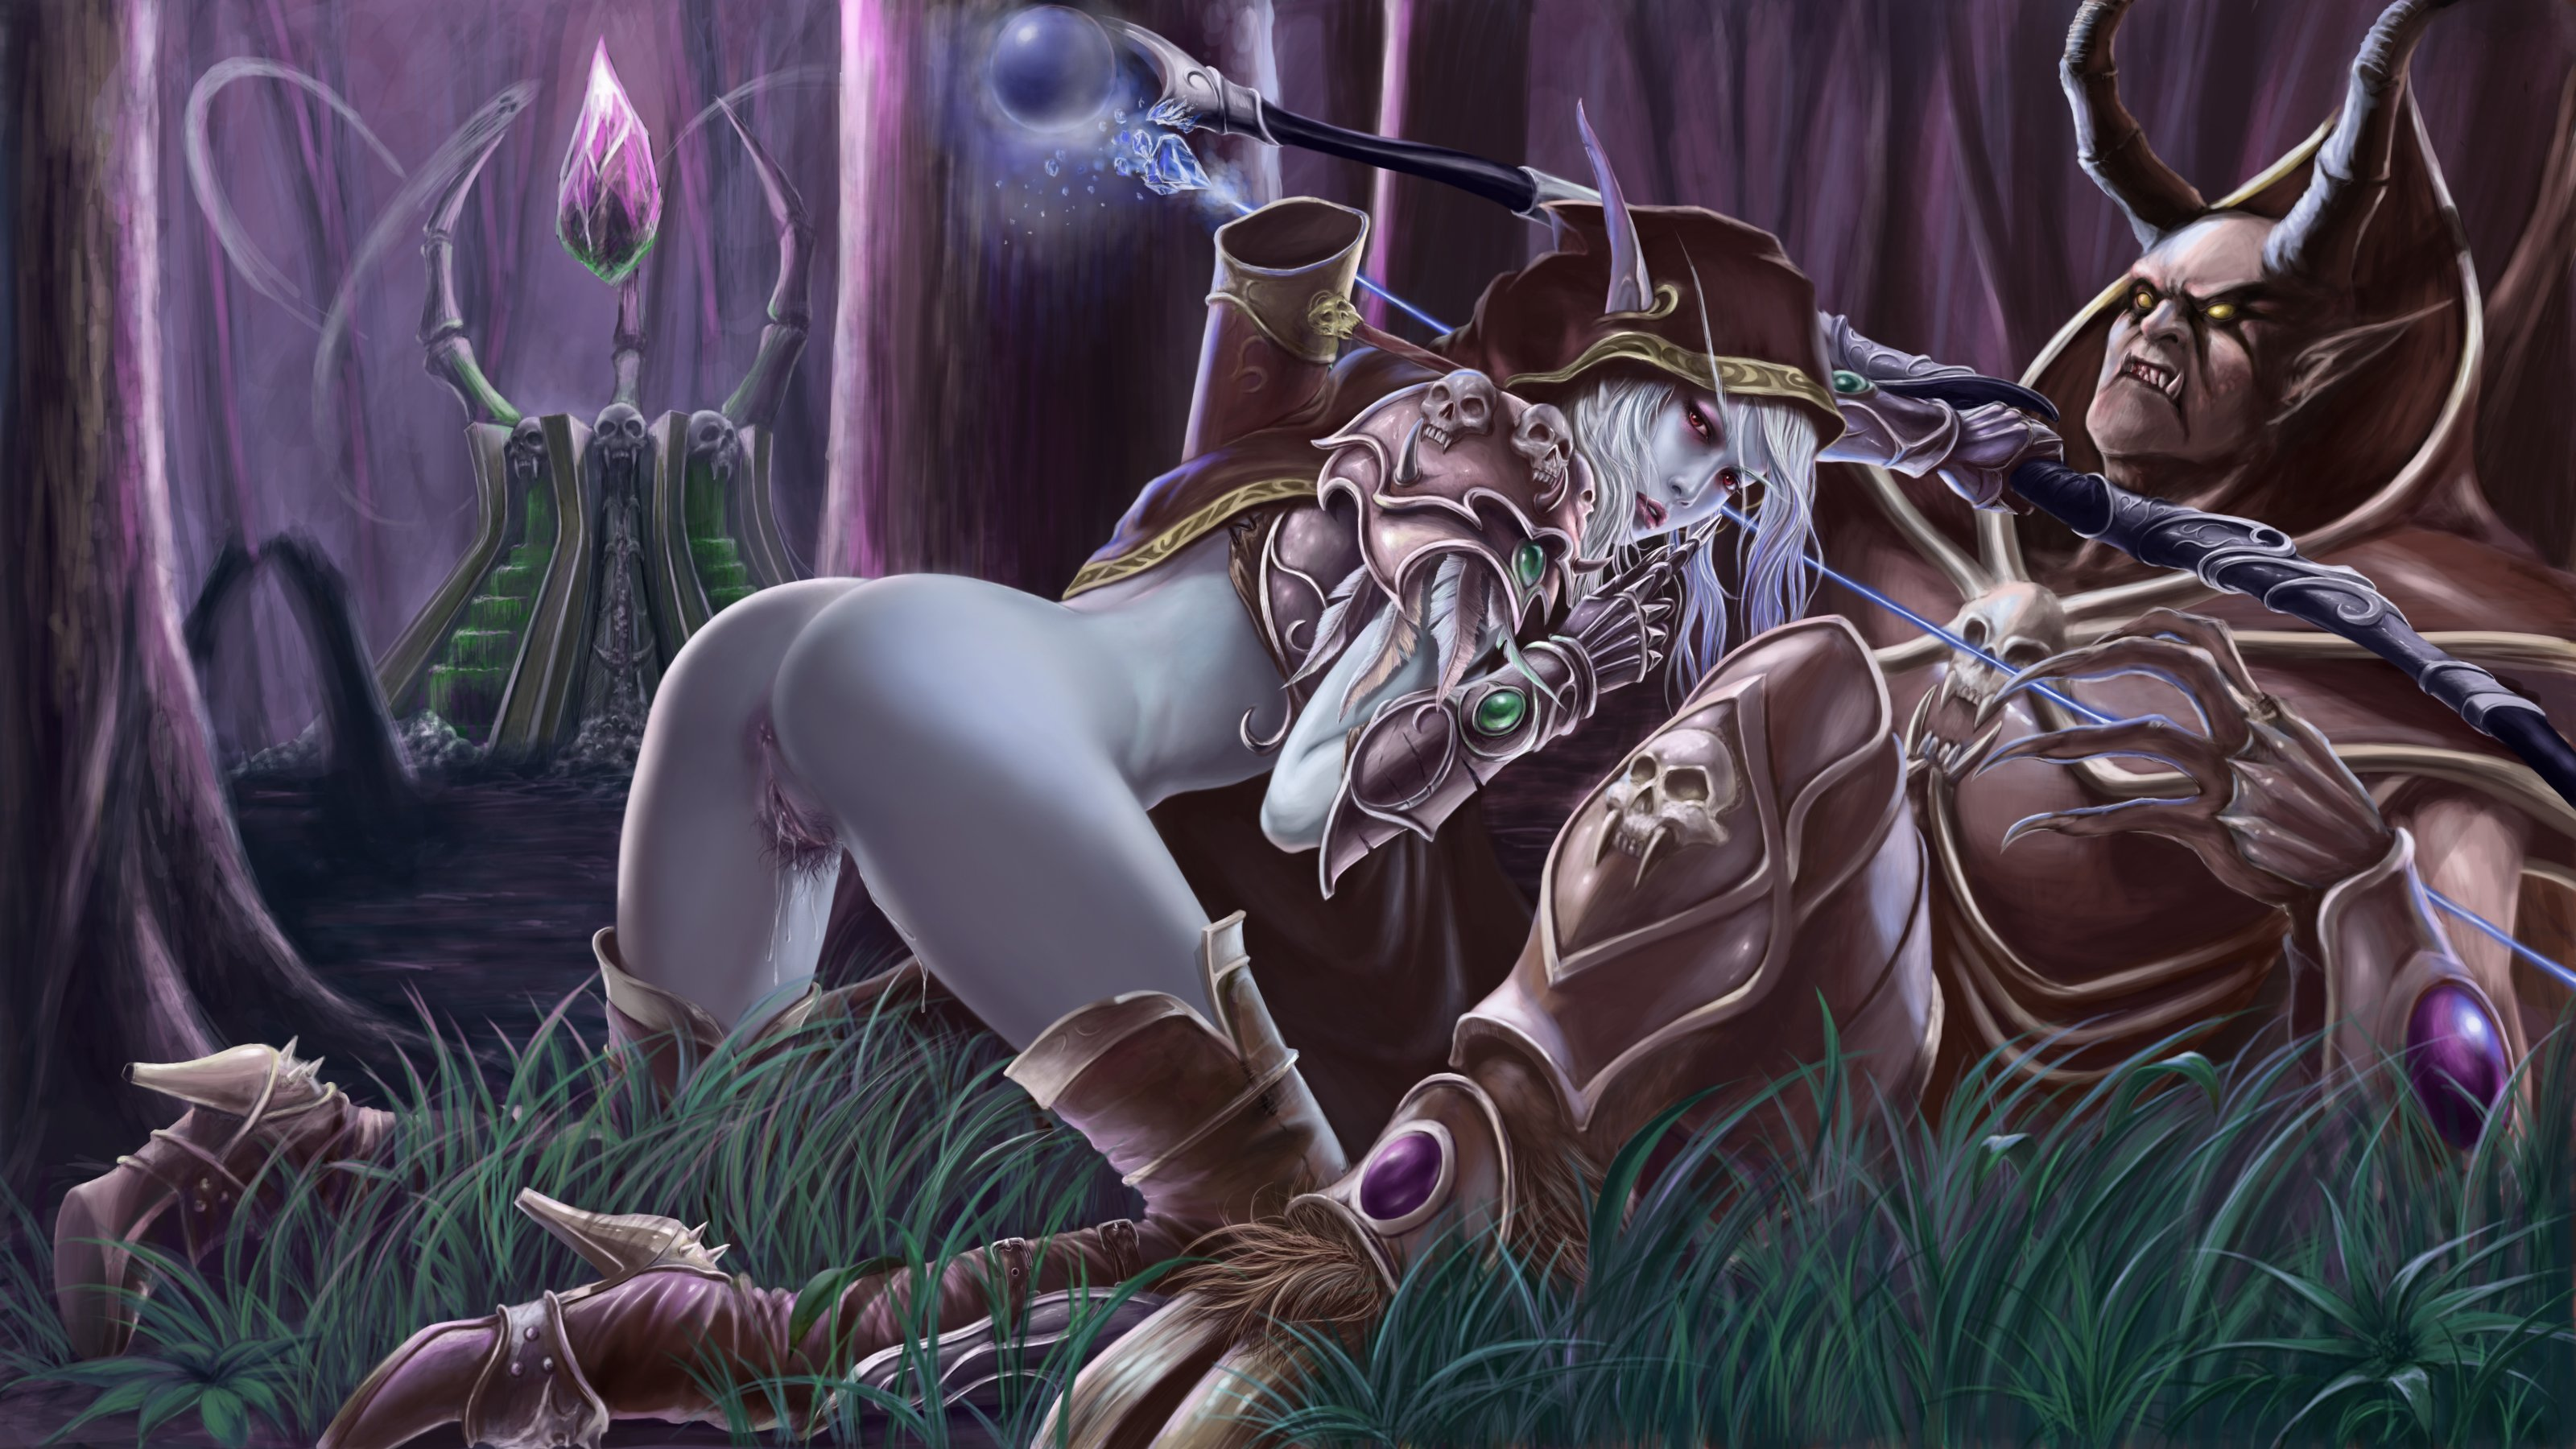 Sylvanas windrunner sex art erotic photos